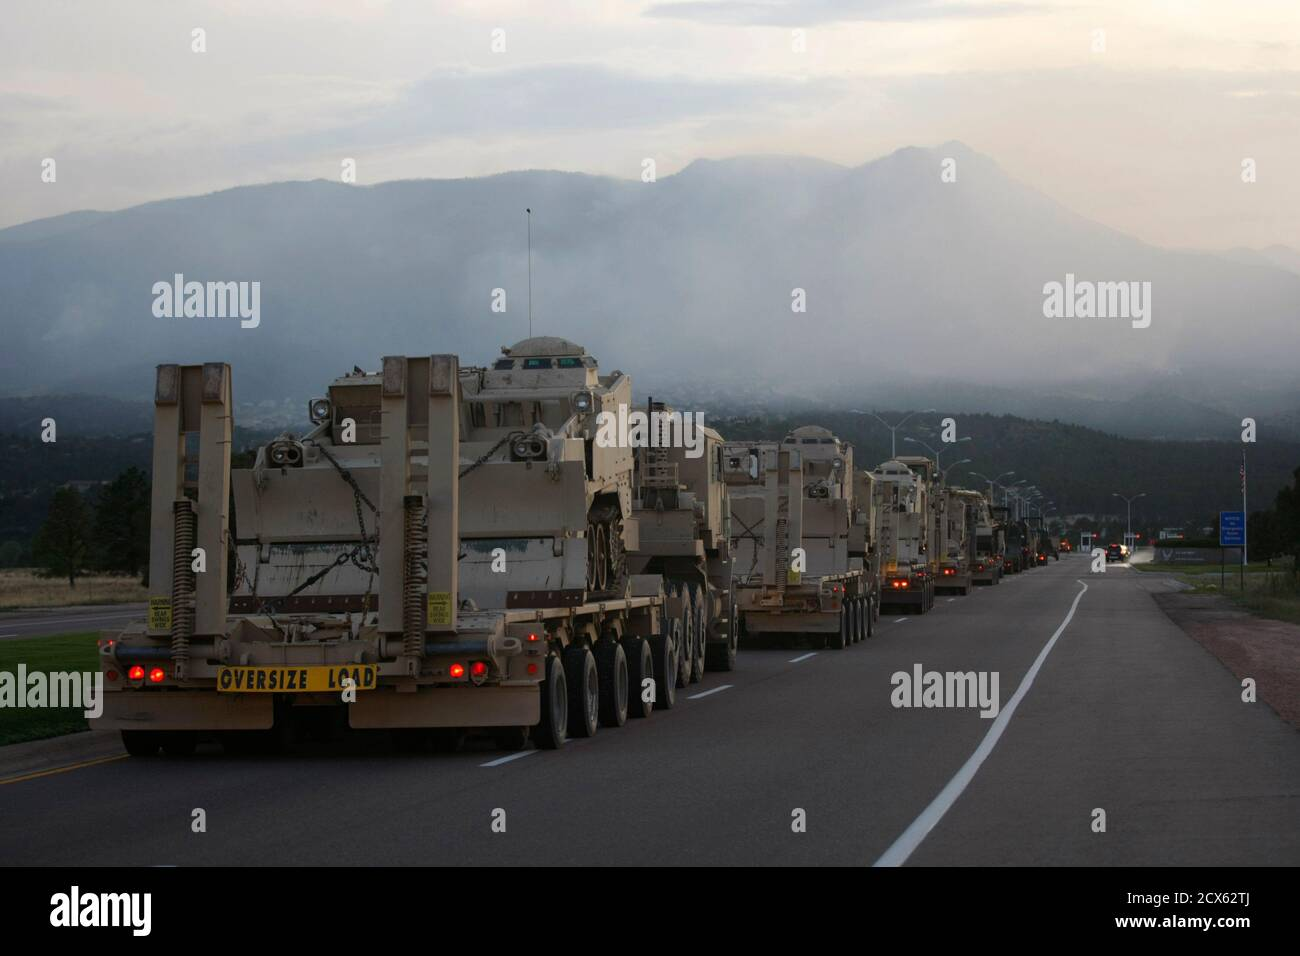 A long line of U.S. Army vehicles and equipment from Ft. Carson arrives at the U.S. Air Force Academy in Colorado Springs, Colorado with the Waldo Canyon fire smoke seen over the base June 27, 2012. Firefighters struggled on Wednesday to beat back the fiercely aggressive wildfire raging at the edge of Colorado Springs that has forced at least 35,000 people from their homes and was nipping at the edges of the academy. The convoy included many large earth-moving machines, troops and supplies for the army to use to help defend the academy from the fire. REUTERS/Rick Wilking (UNITED STATES - Tags: Stock Photo